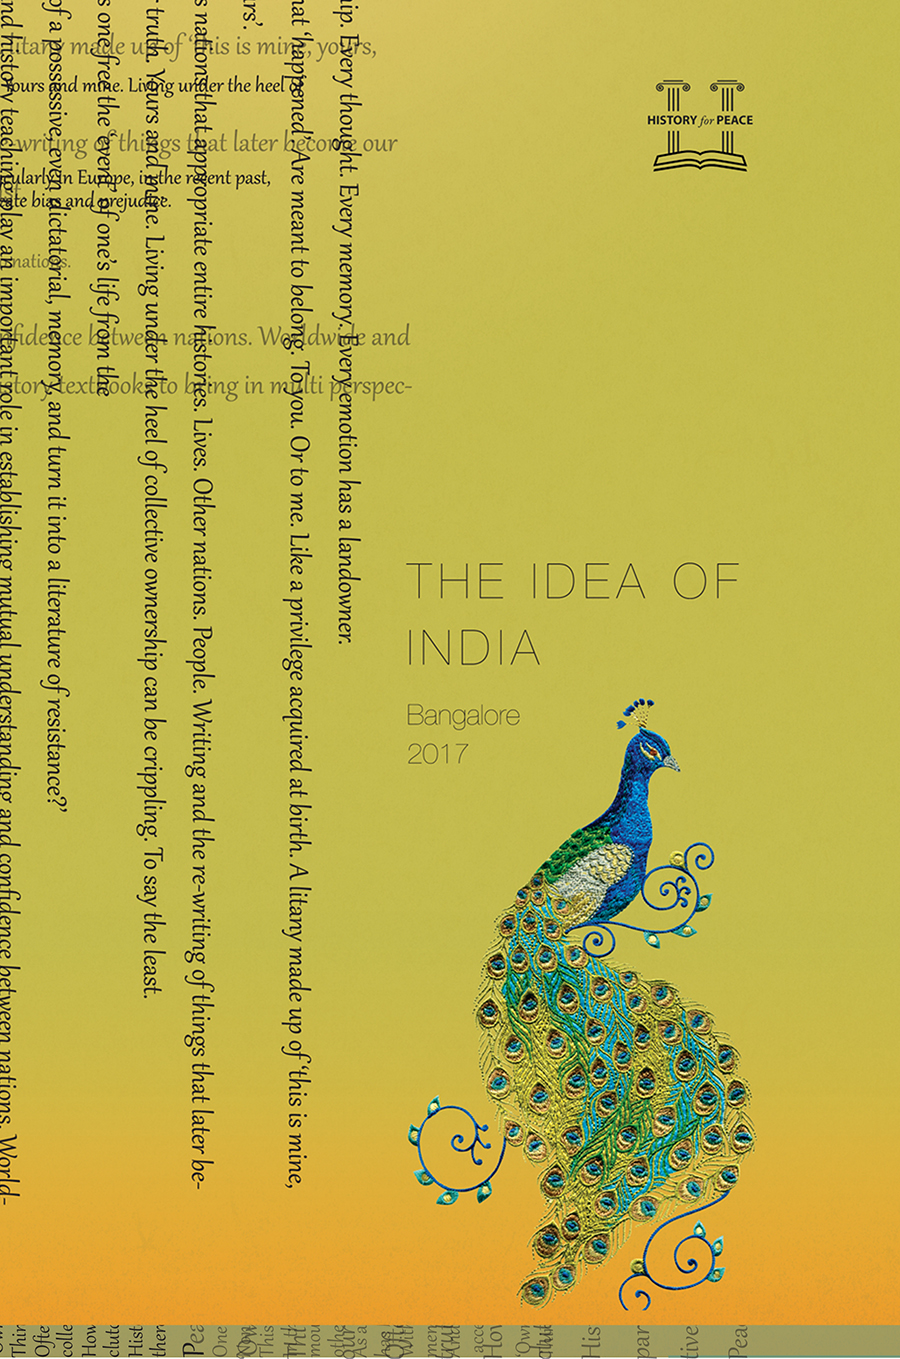 The History for Peace Journals | Seagull Books